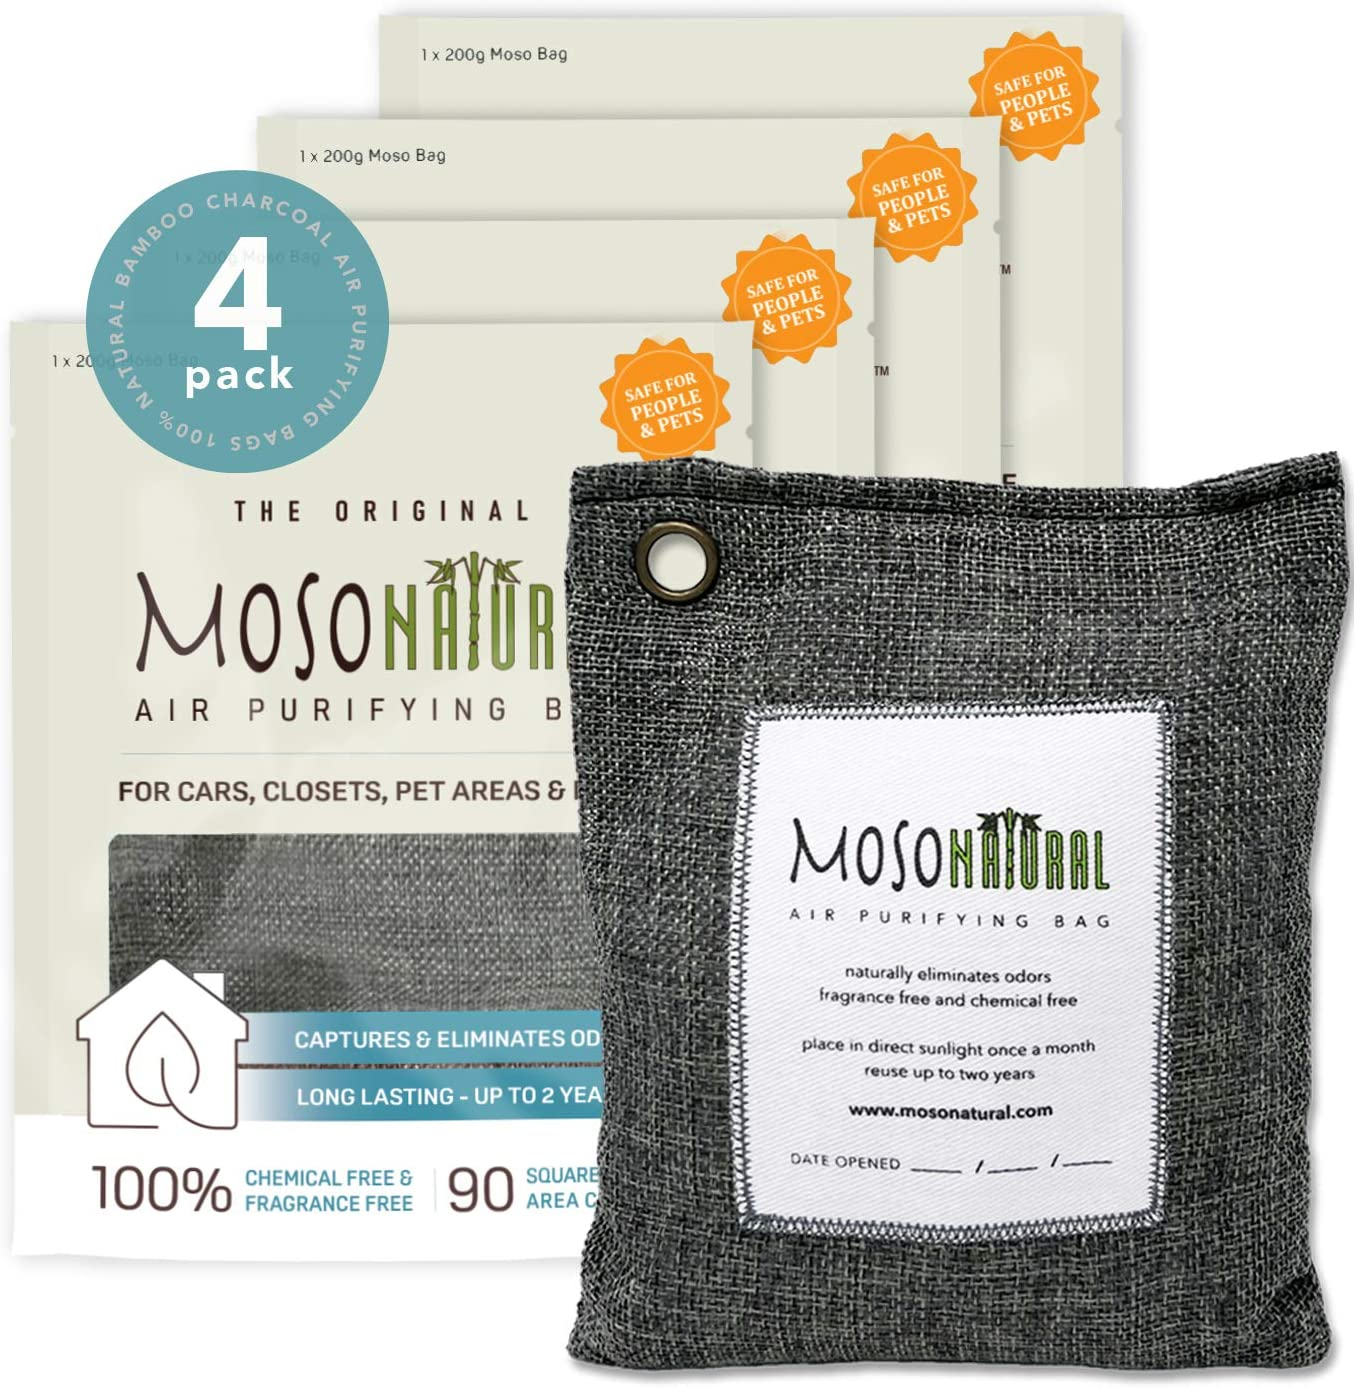 MOSO NATURAL: The Original Air Purifying Bag